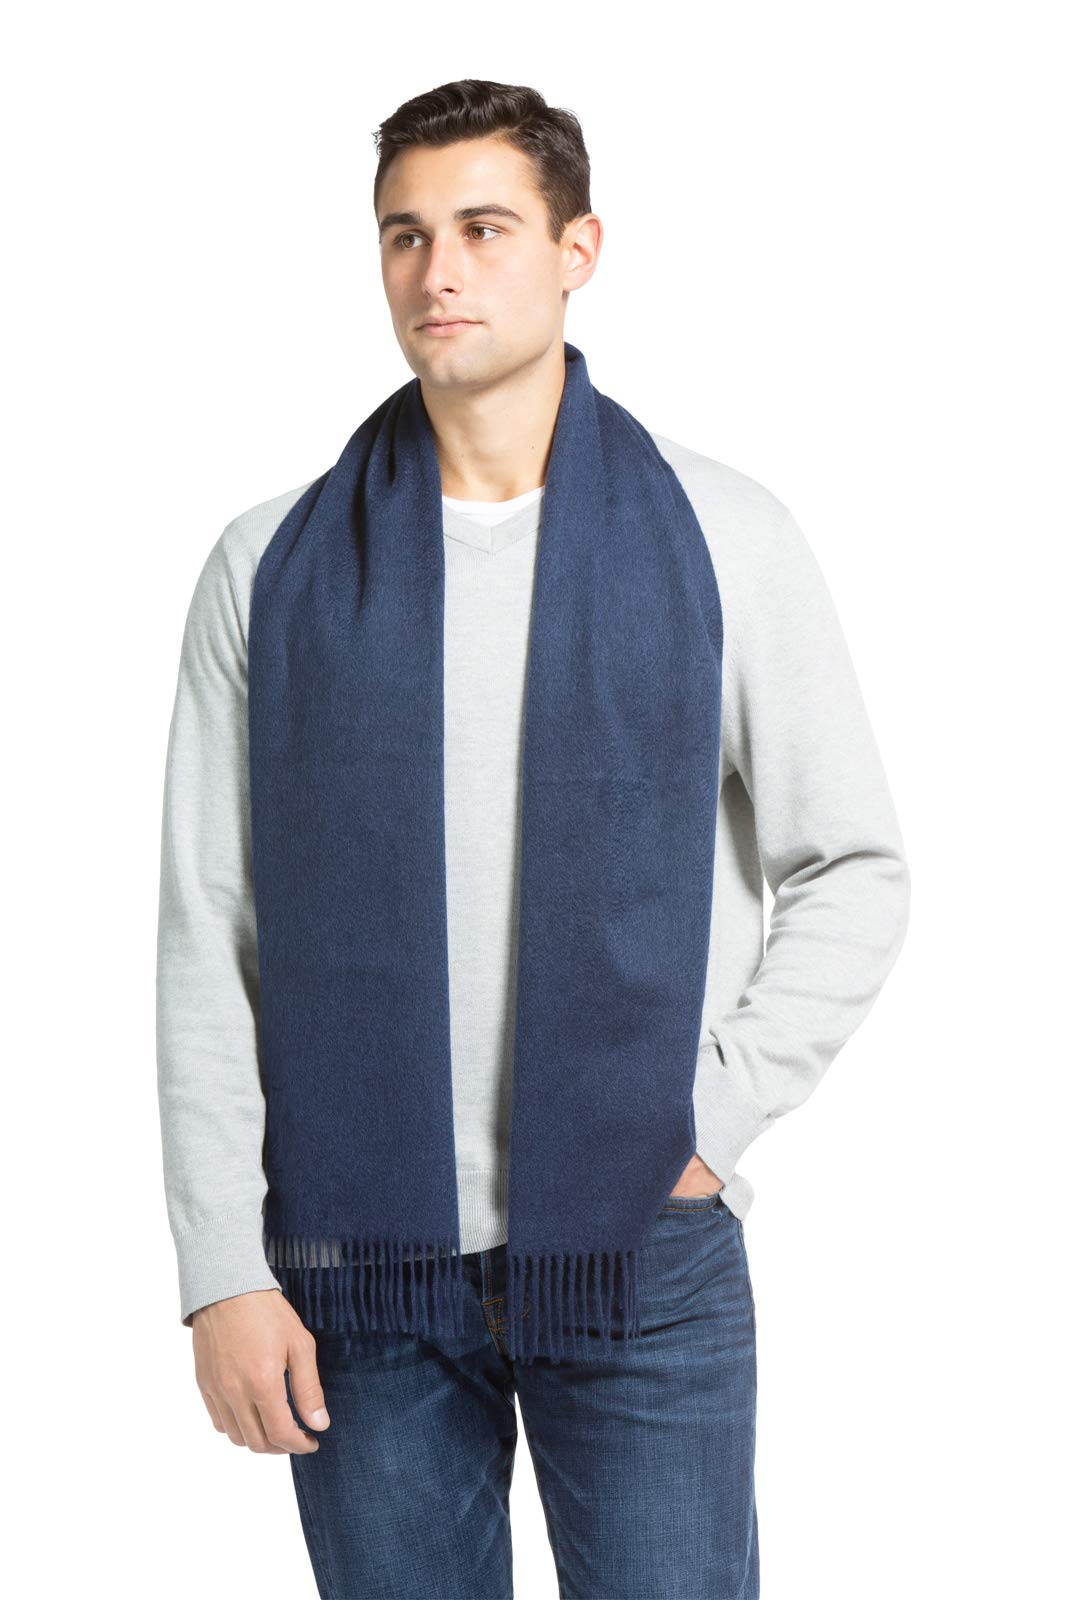 0846baeb73ccf Fishers Finery Men s 100% Pure Cashmere Winter Scarf  2-Ply Dehaired  product image